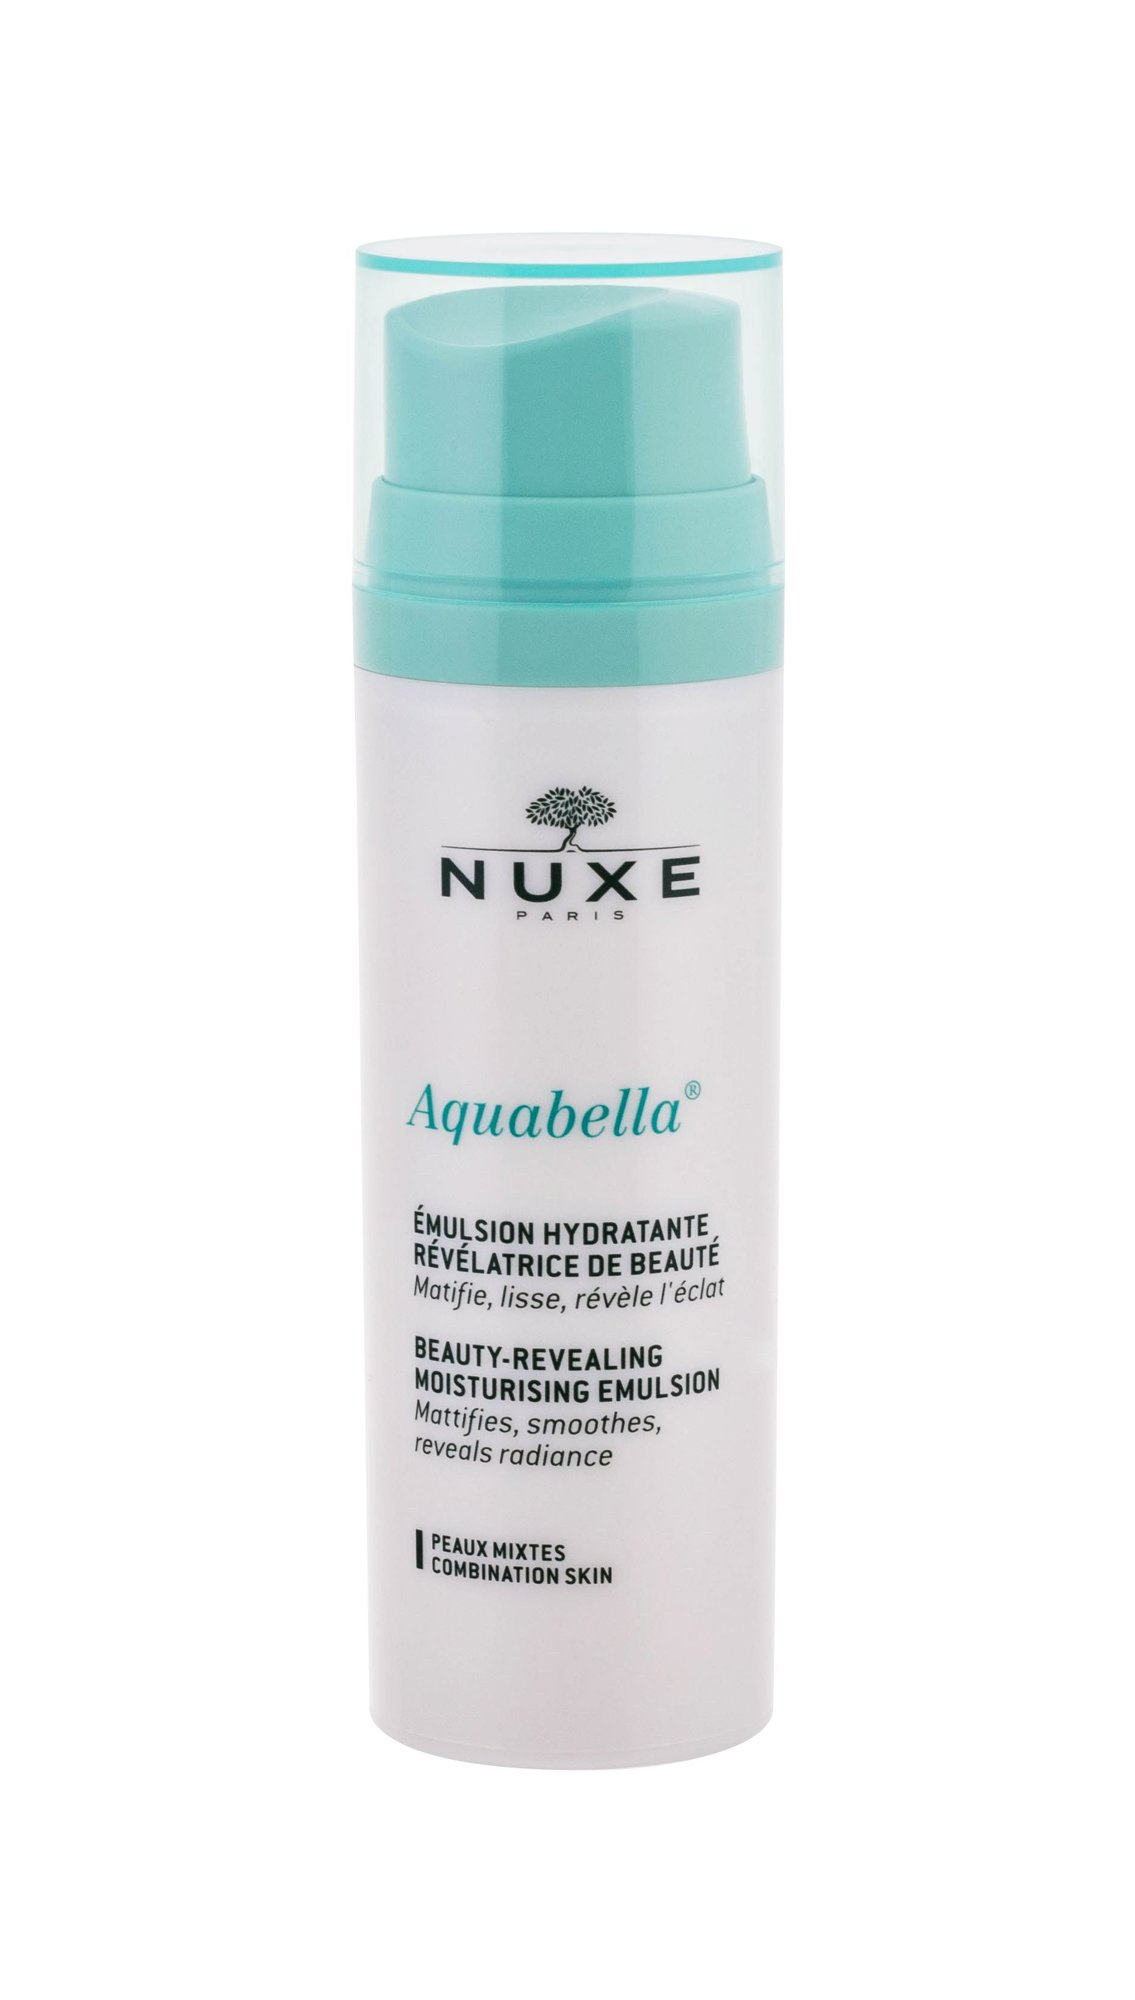 NUXE Aquabella Facial Gel 50ml